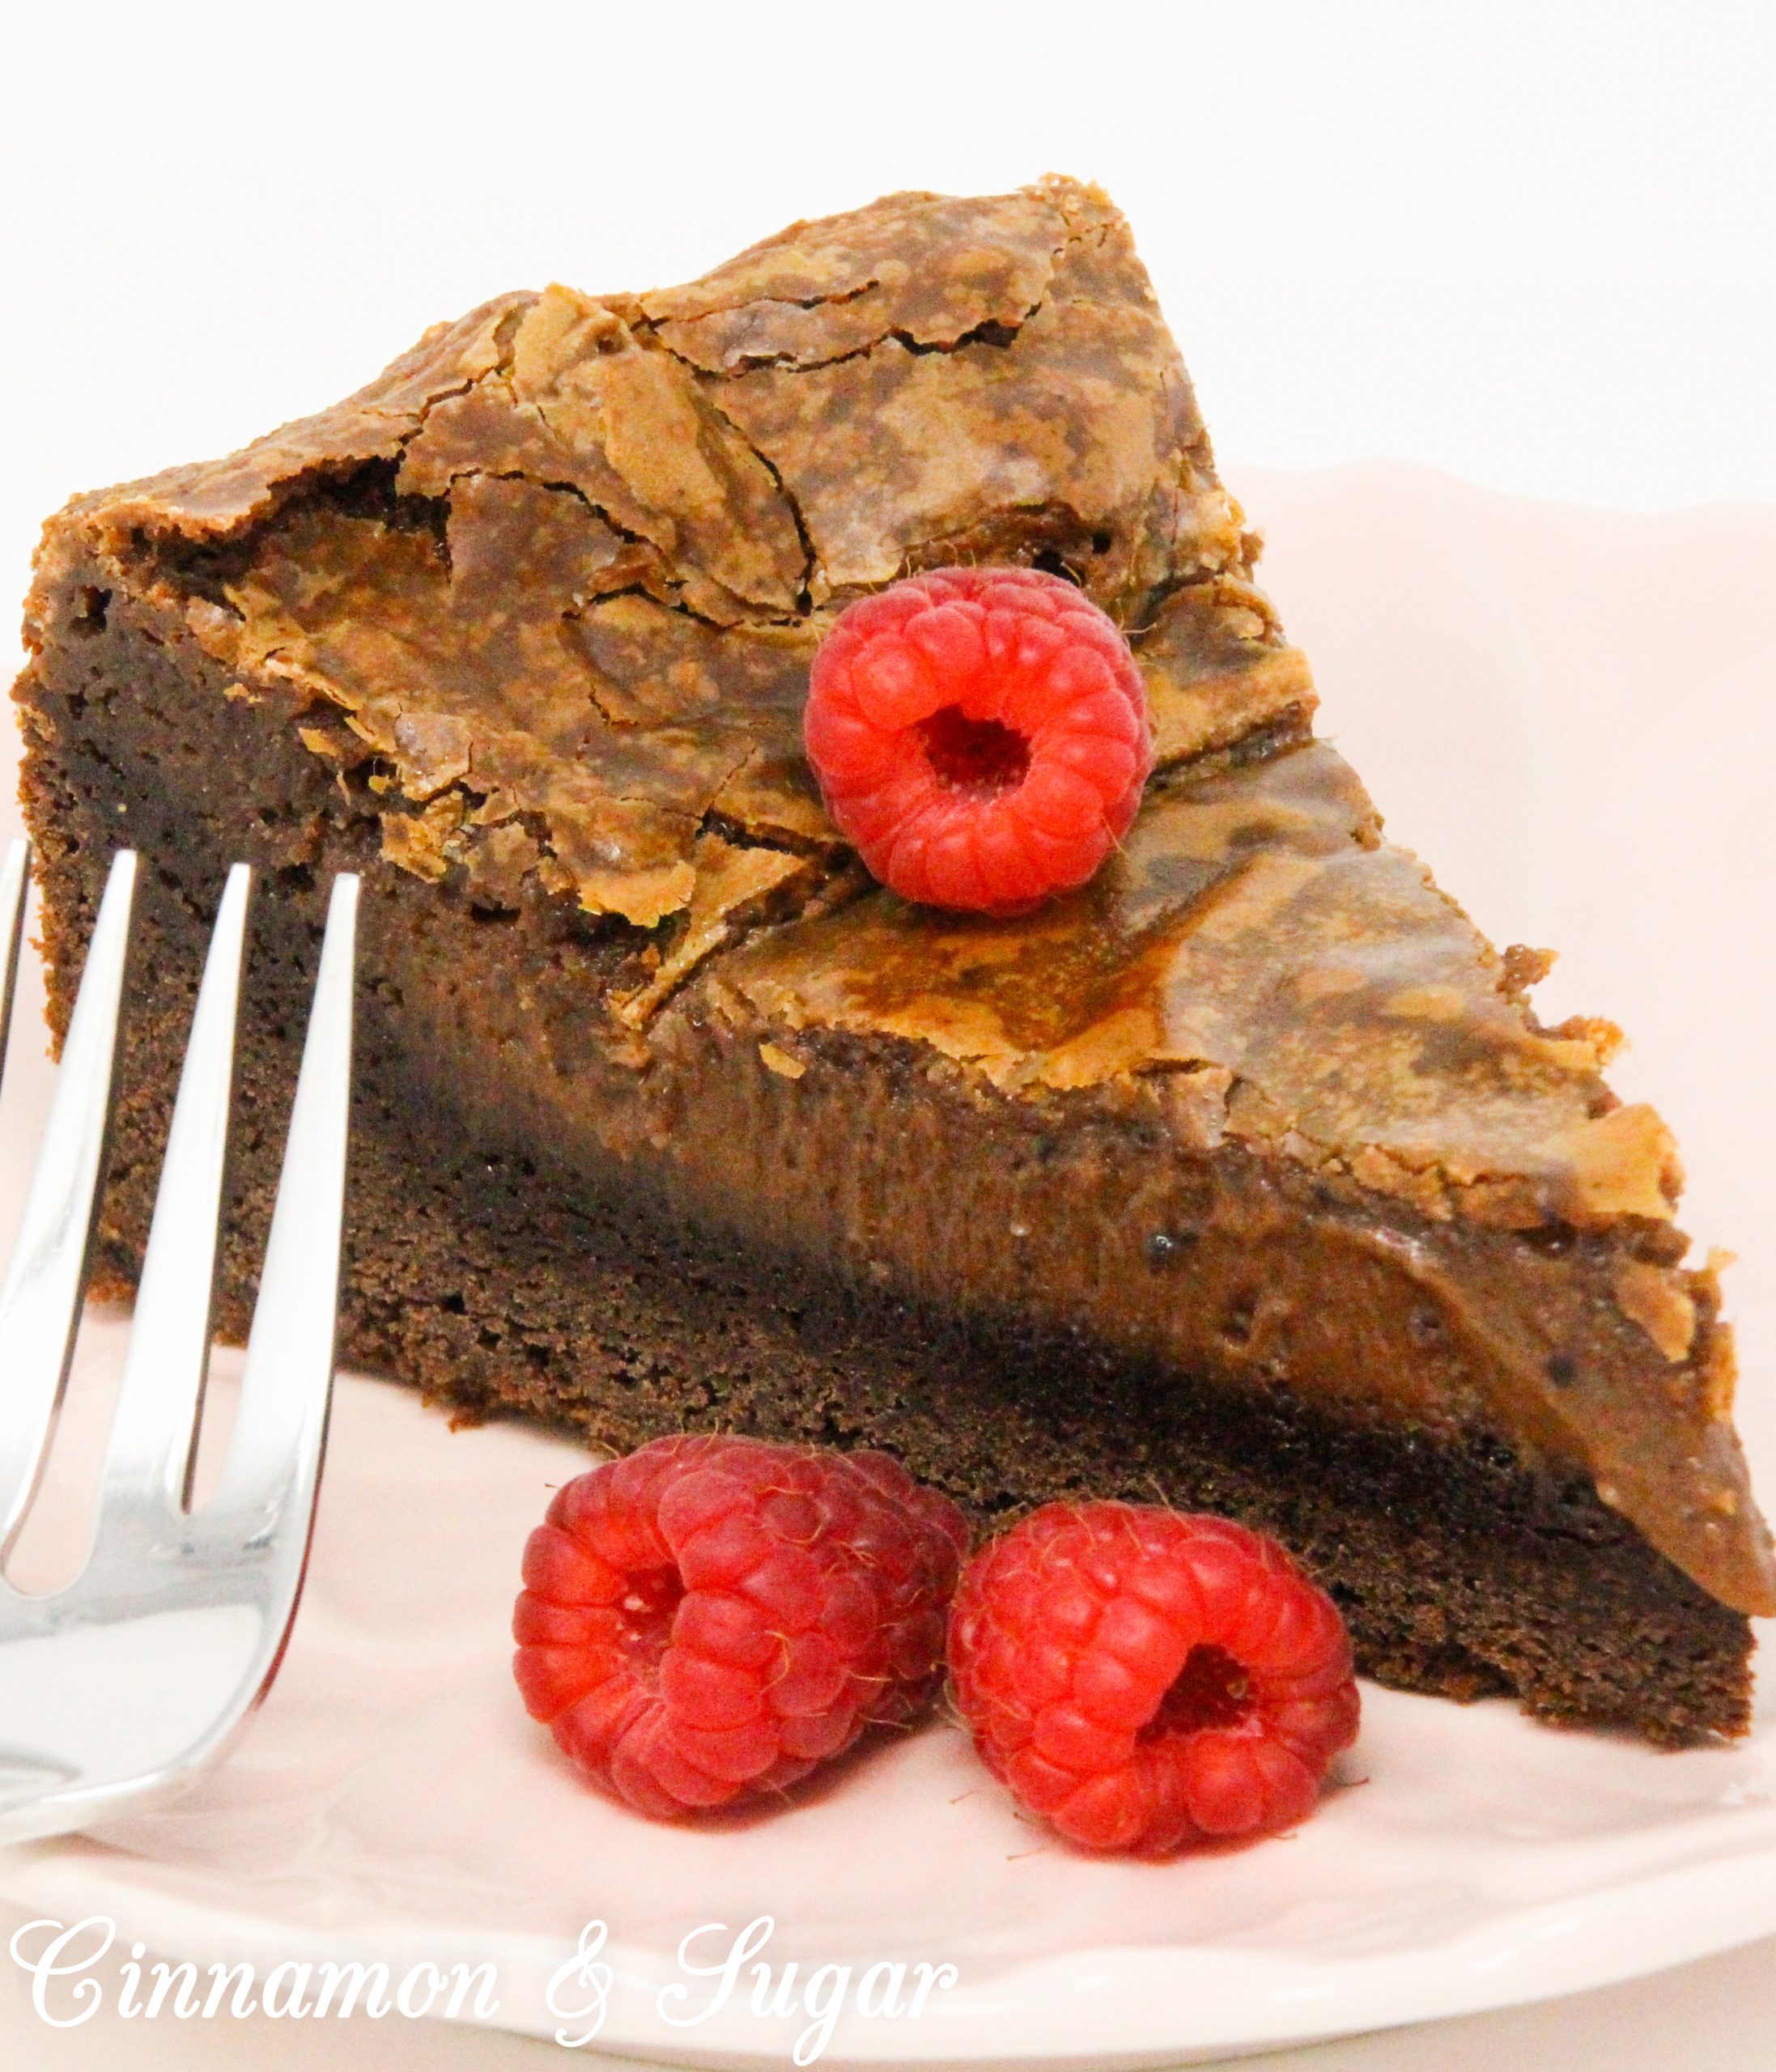 Chocolate Gooey Butter Cake is a St. Louis dessert tradition from the 1930's. The modern version incorporates boxed cake mix to simplify matters and with the addition of dairy and pantry staples, a scrumptious dessert is created. Recipe shared with permission granted by Lynn Cahoon, author of PICTURE PERFECT FRAME.